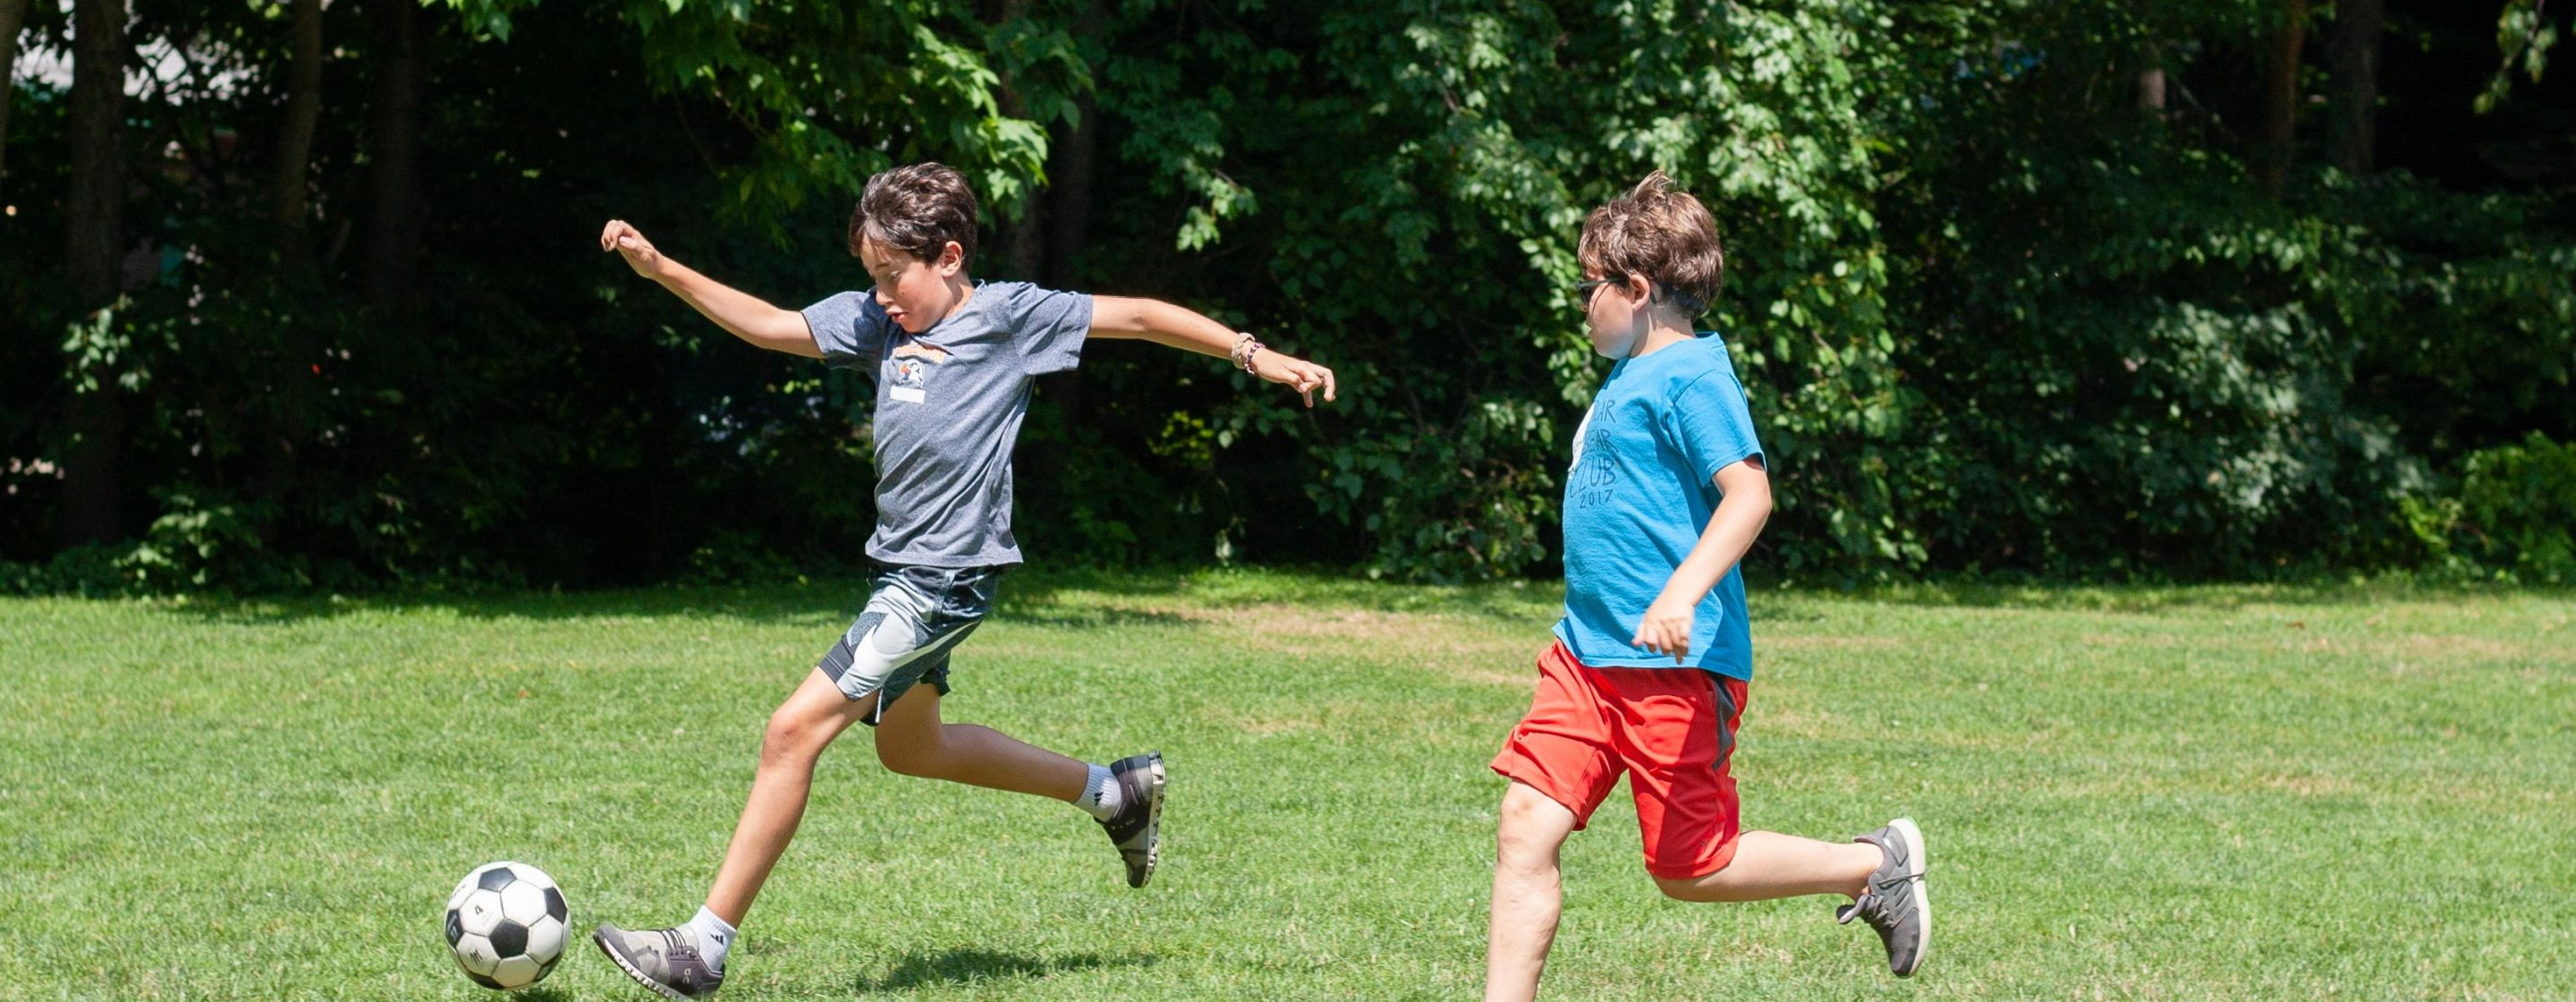 Kids Playing Soccer at Camp